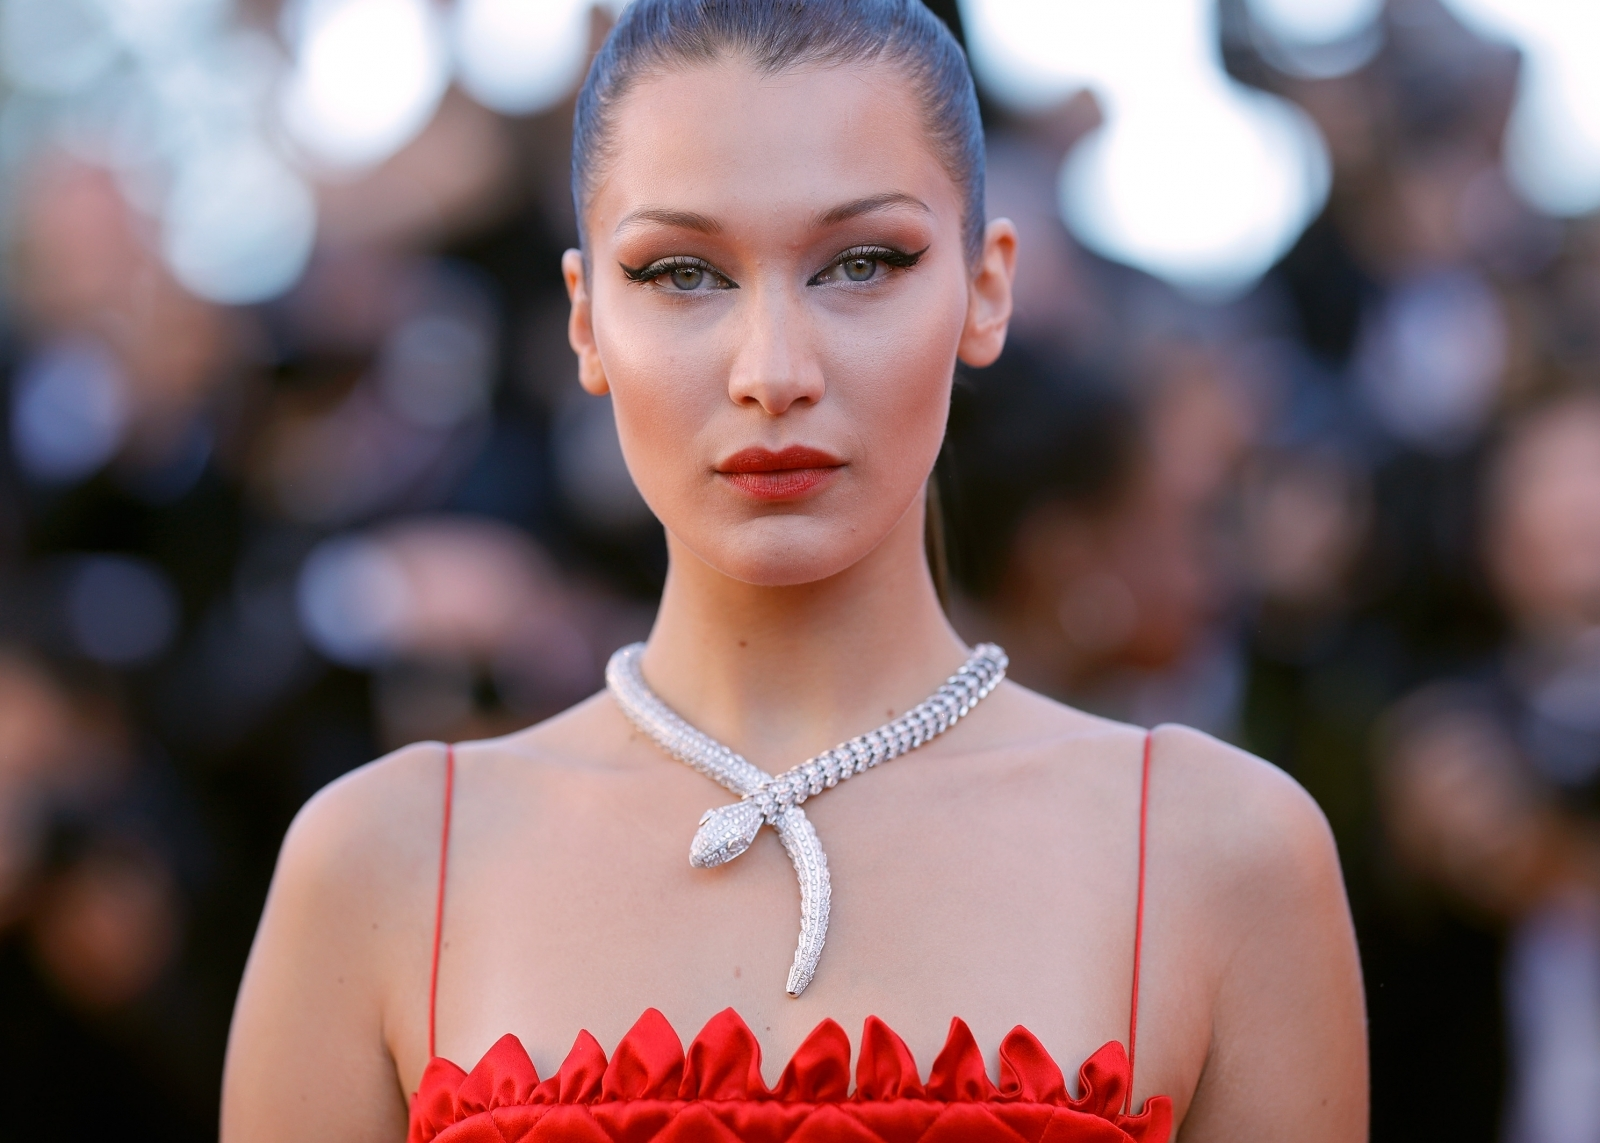 'Homeboy can get it' – Bella Hadid comes back from cringe ... скарлетт йоханссон